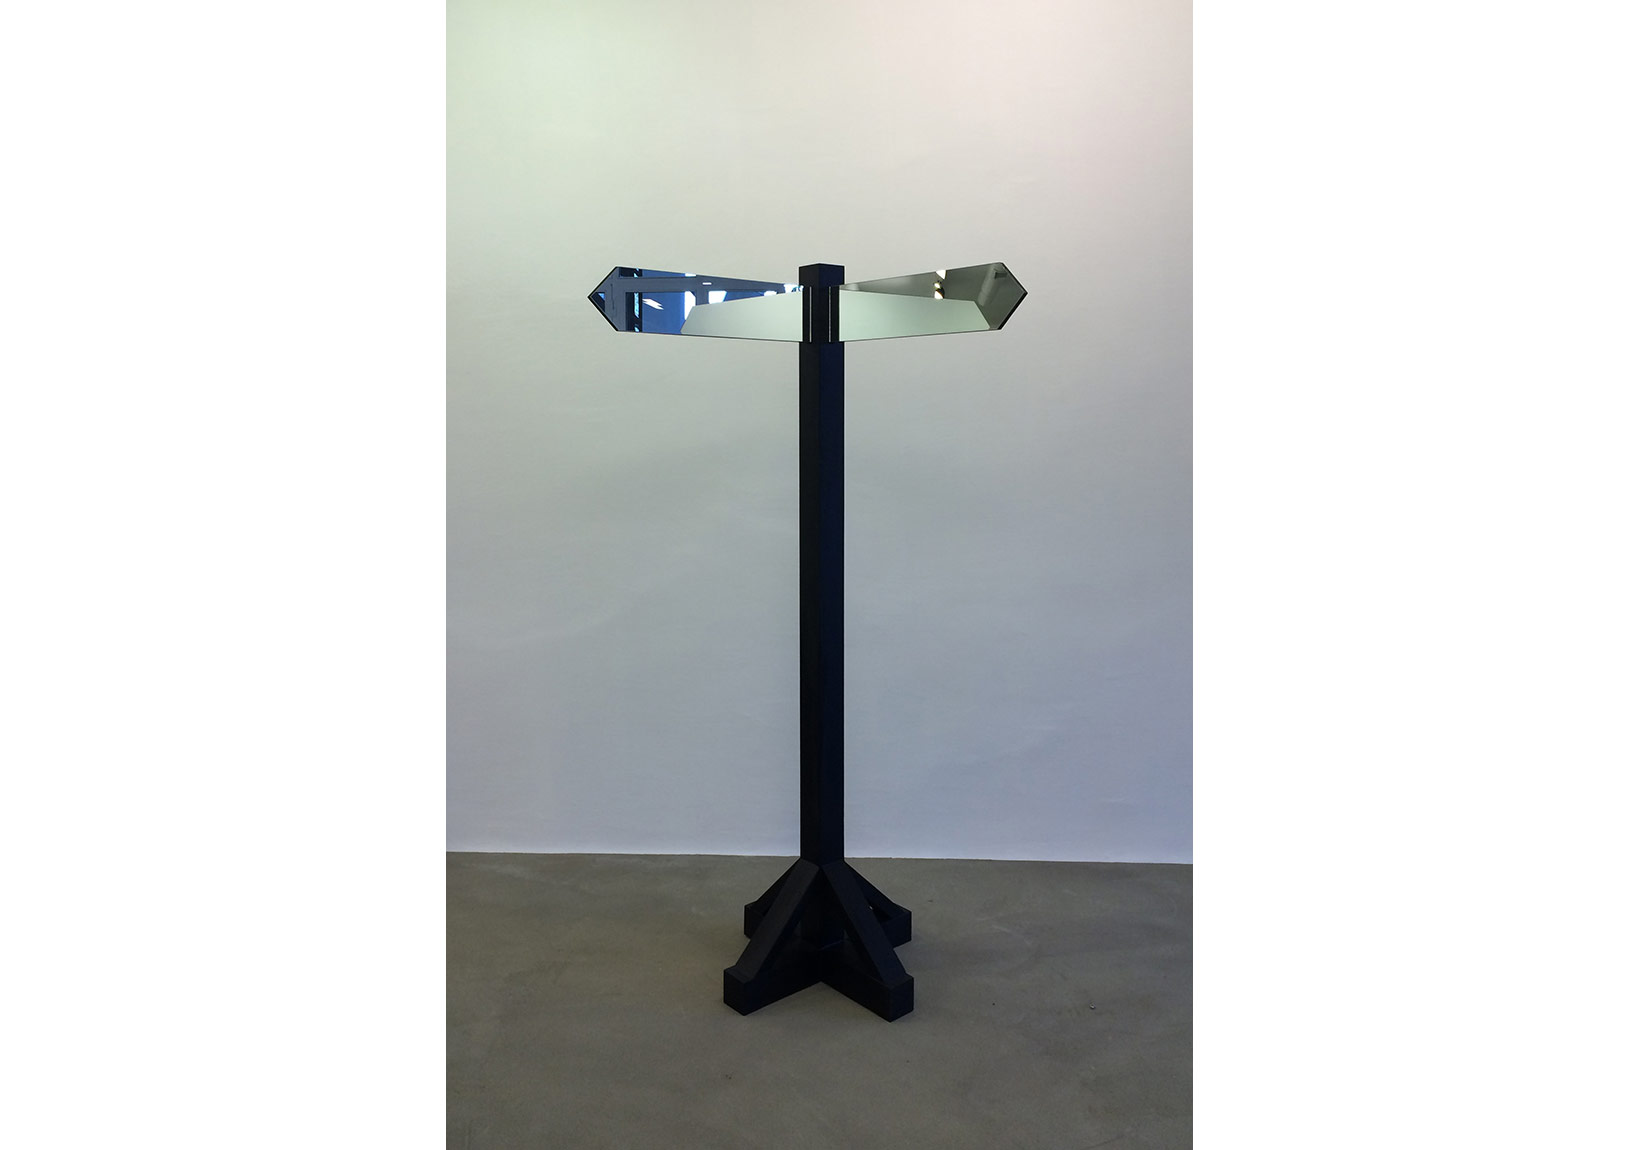 Sümer Sayınevery now and then (2015) heykel sculpture 60x60x120 cm